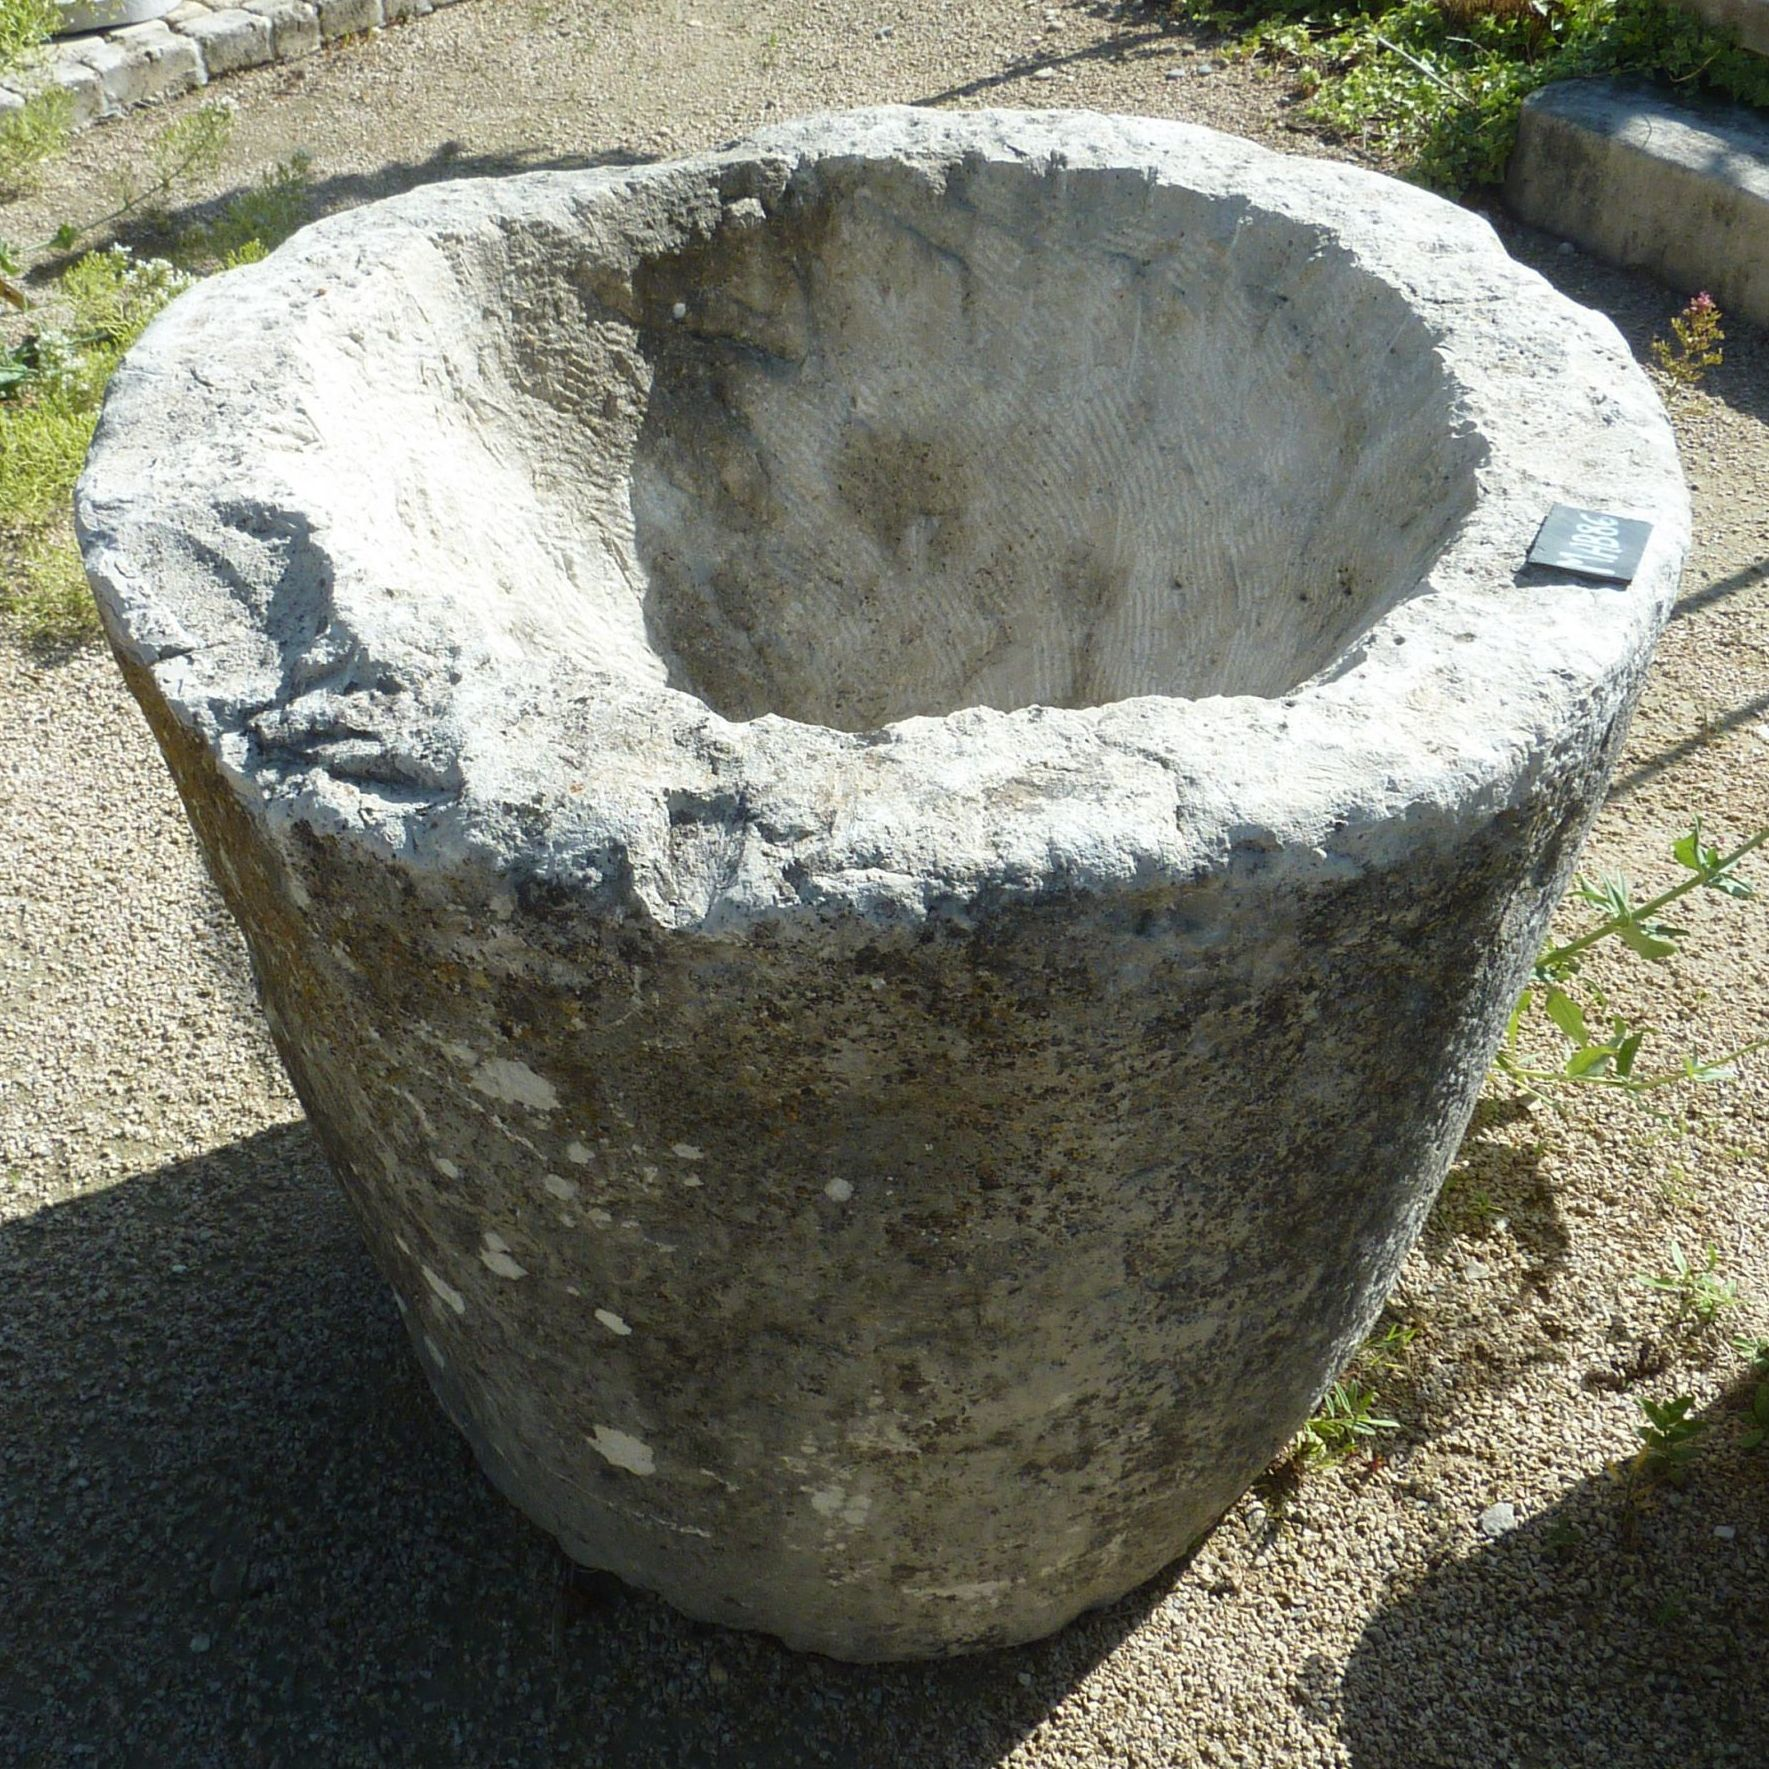 Beautiful circular basin, in a conical shape,  ideal for a planter.